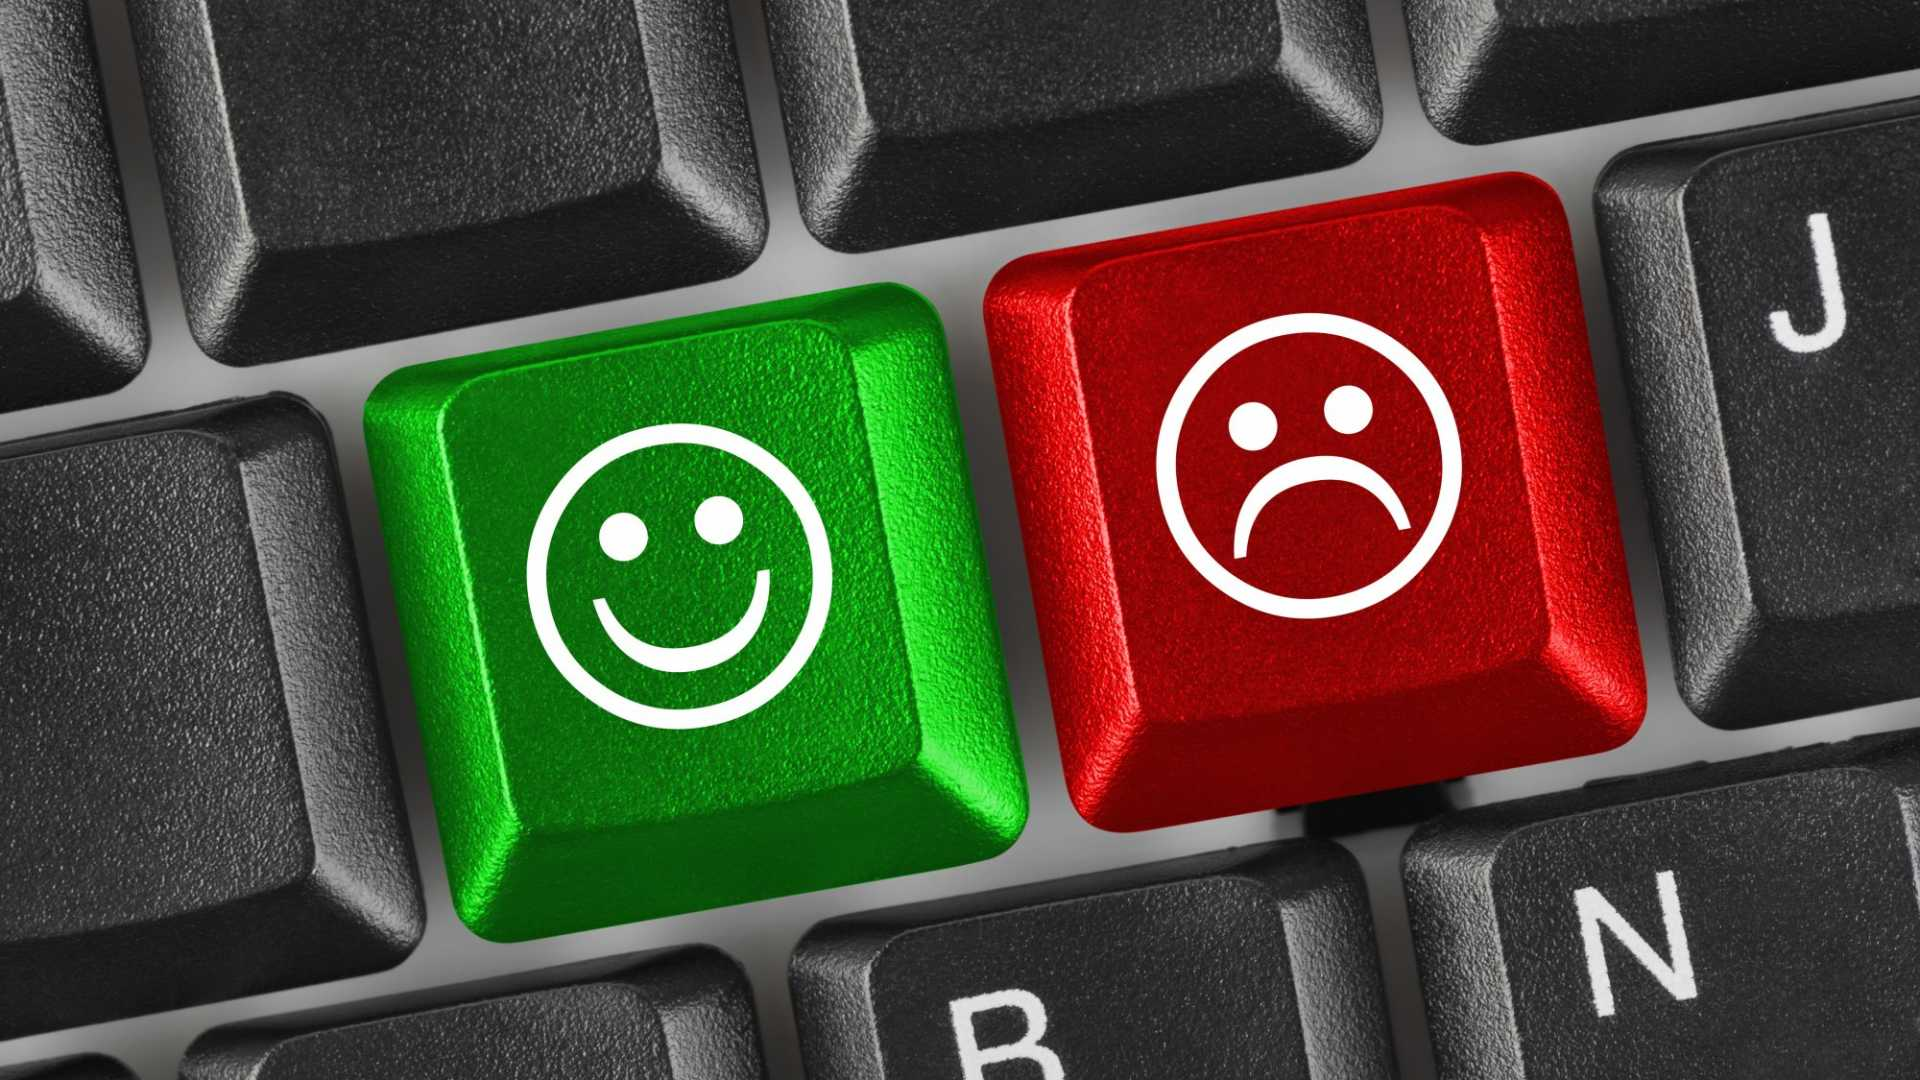 7 Questions to Help You Accurately Measure Customer Satisfaction